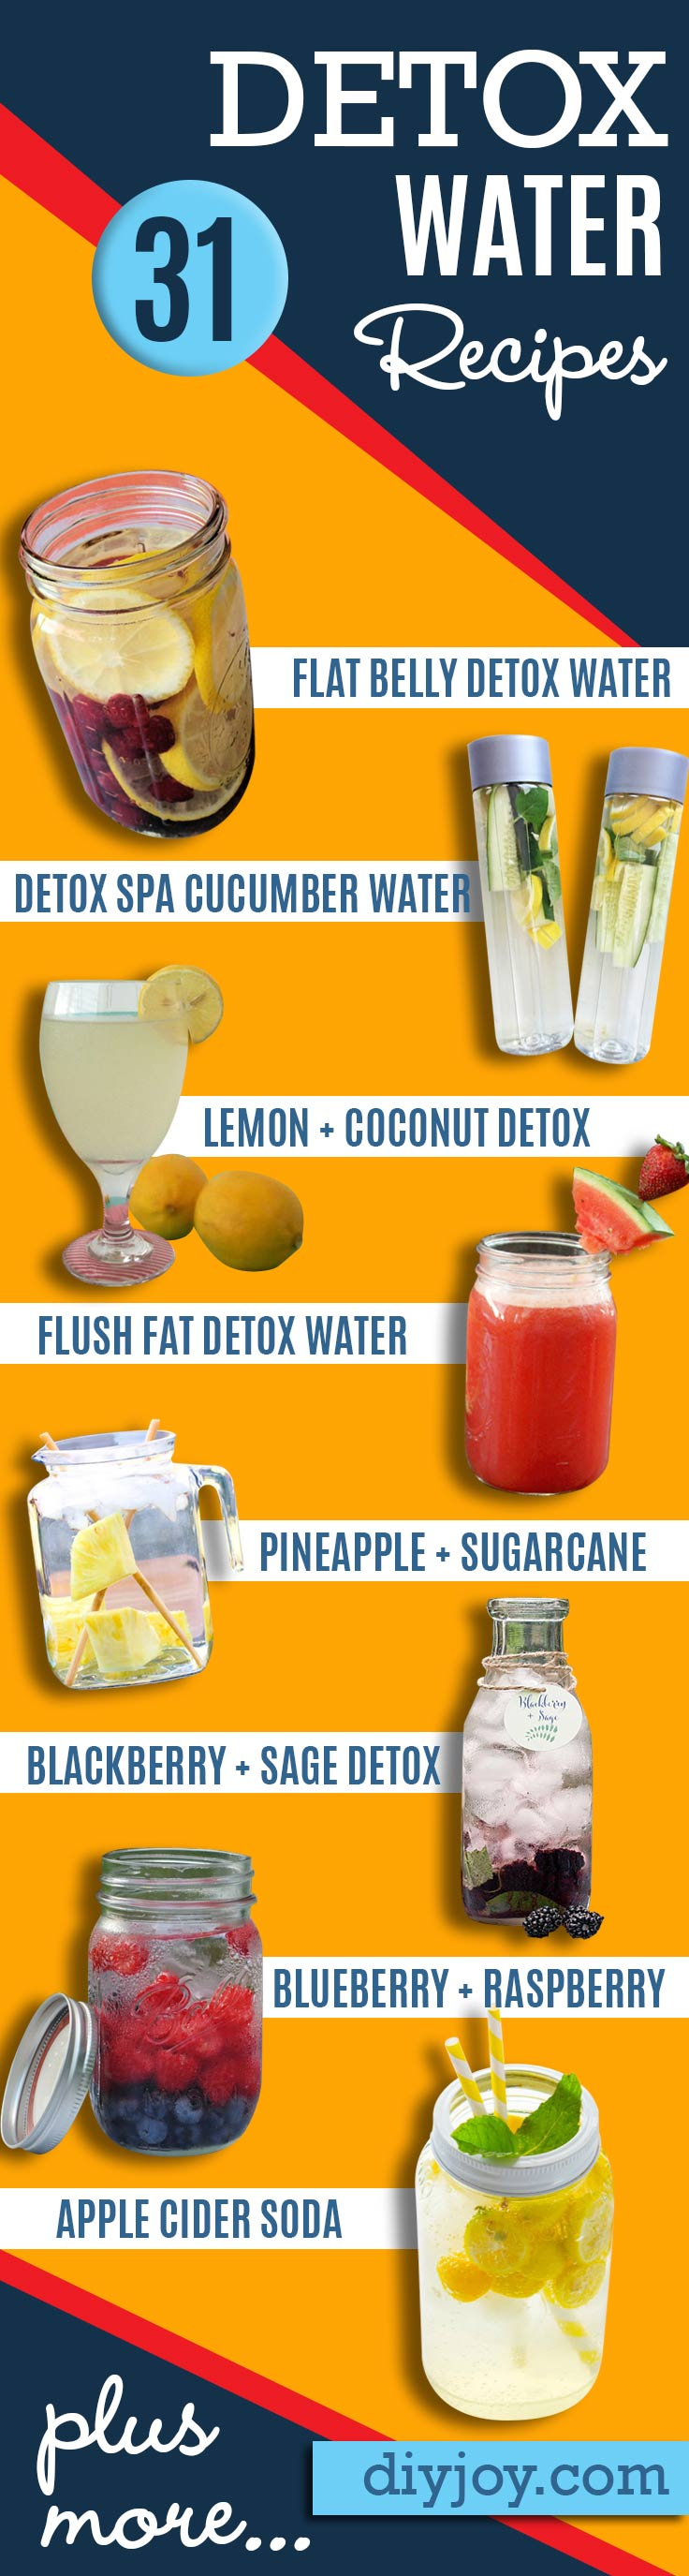 Detox Water Recipes for Drinks To Cleanse Skin and Body. Easy to Make Waters and Tea Promote Health, Diet and Support Weight loss | Detox Ideas to Lose Weight and Remove Toxins #detox #dietrecipes #healthy